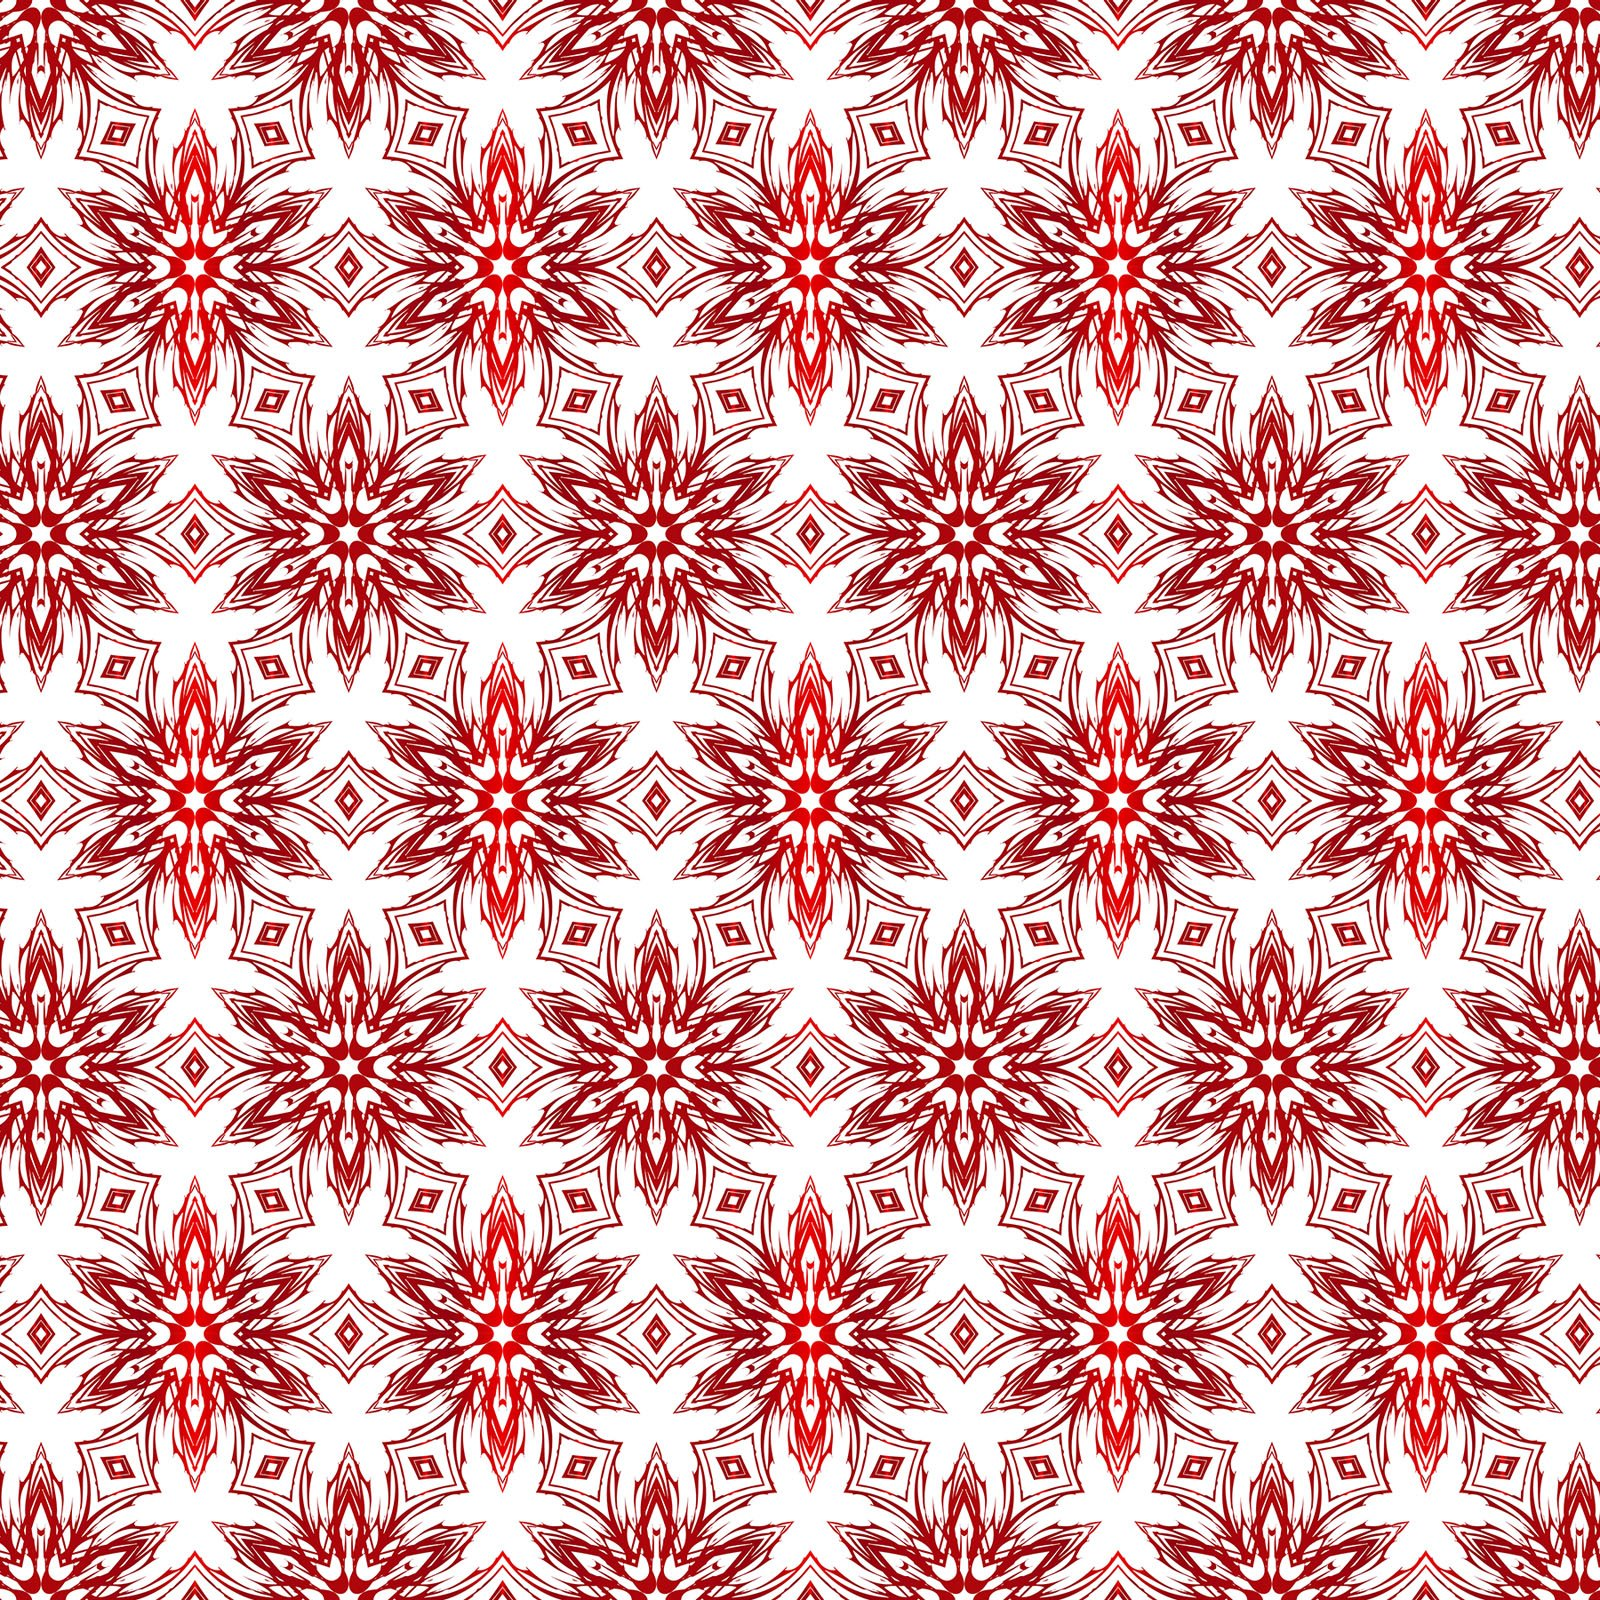 INTH-8WAW 1 - WINTER AROUND THE WORLD BY JASON YENTER SNOWFLAKES RED